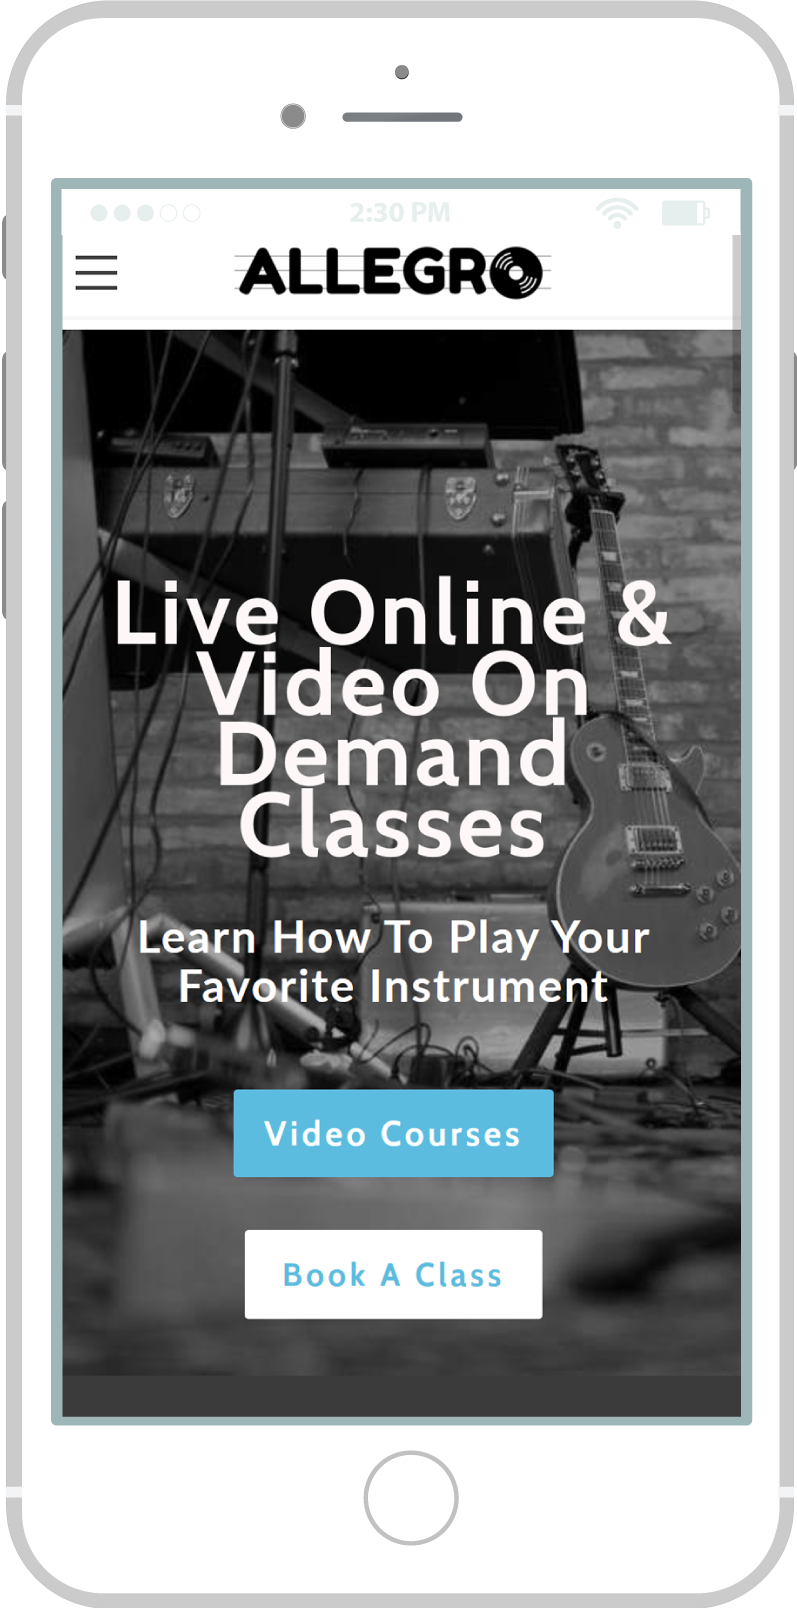 All-In-One Website To Sell Your Online Classes - Allegro Mobile View 1 Example